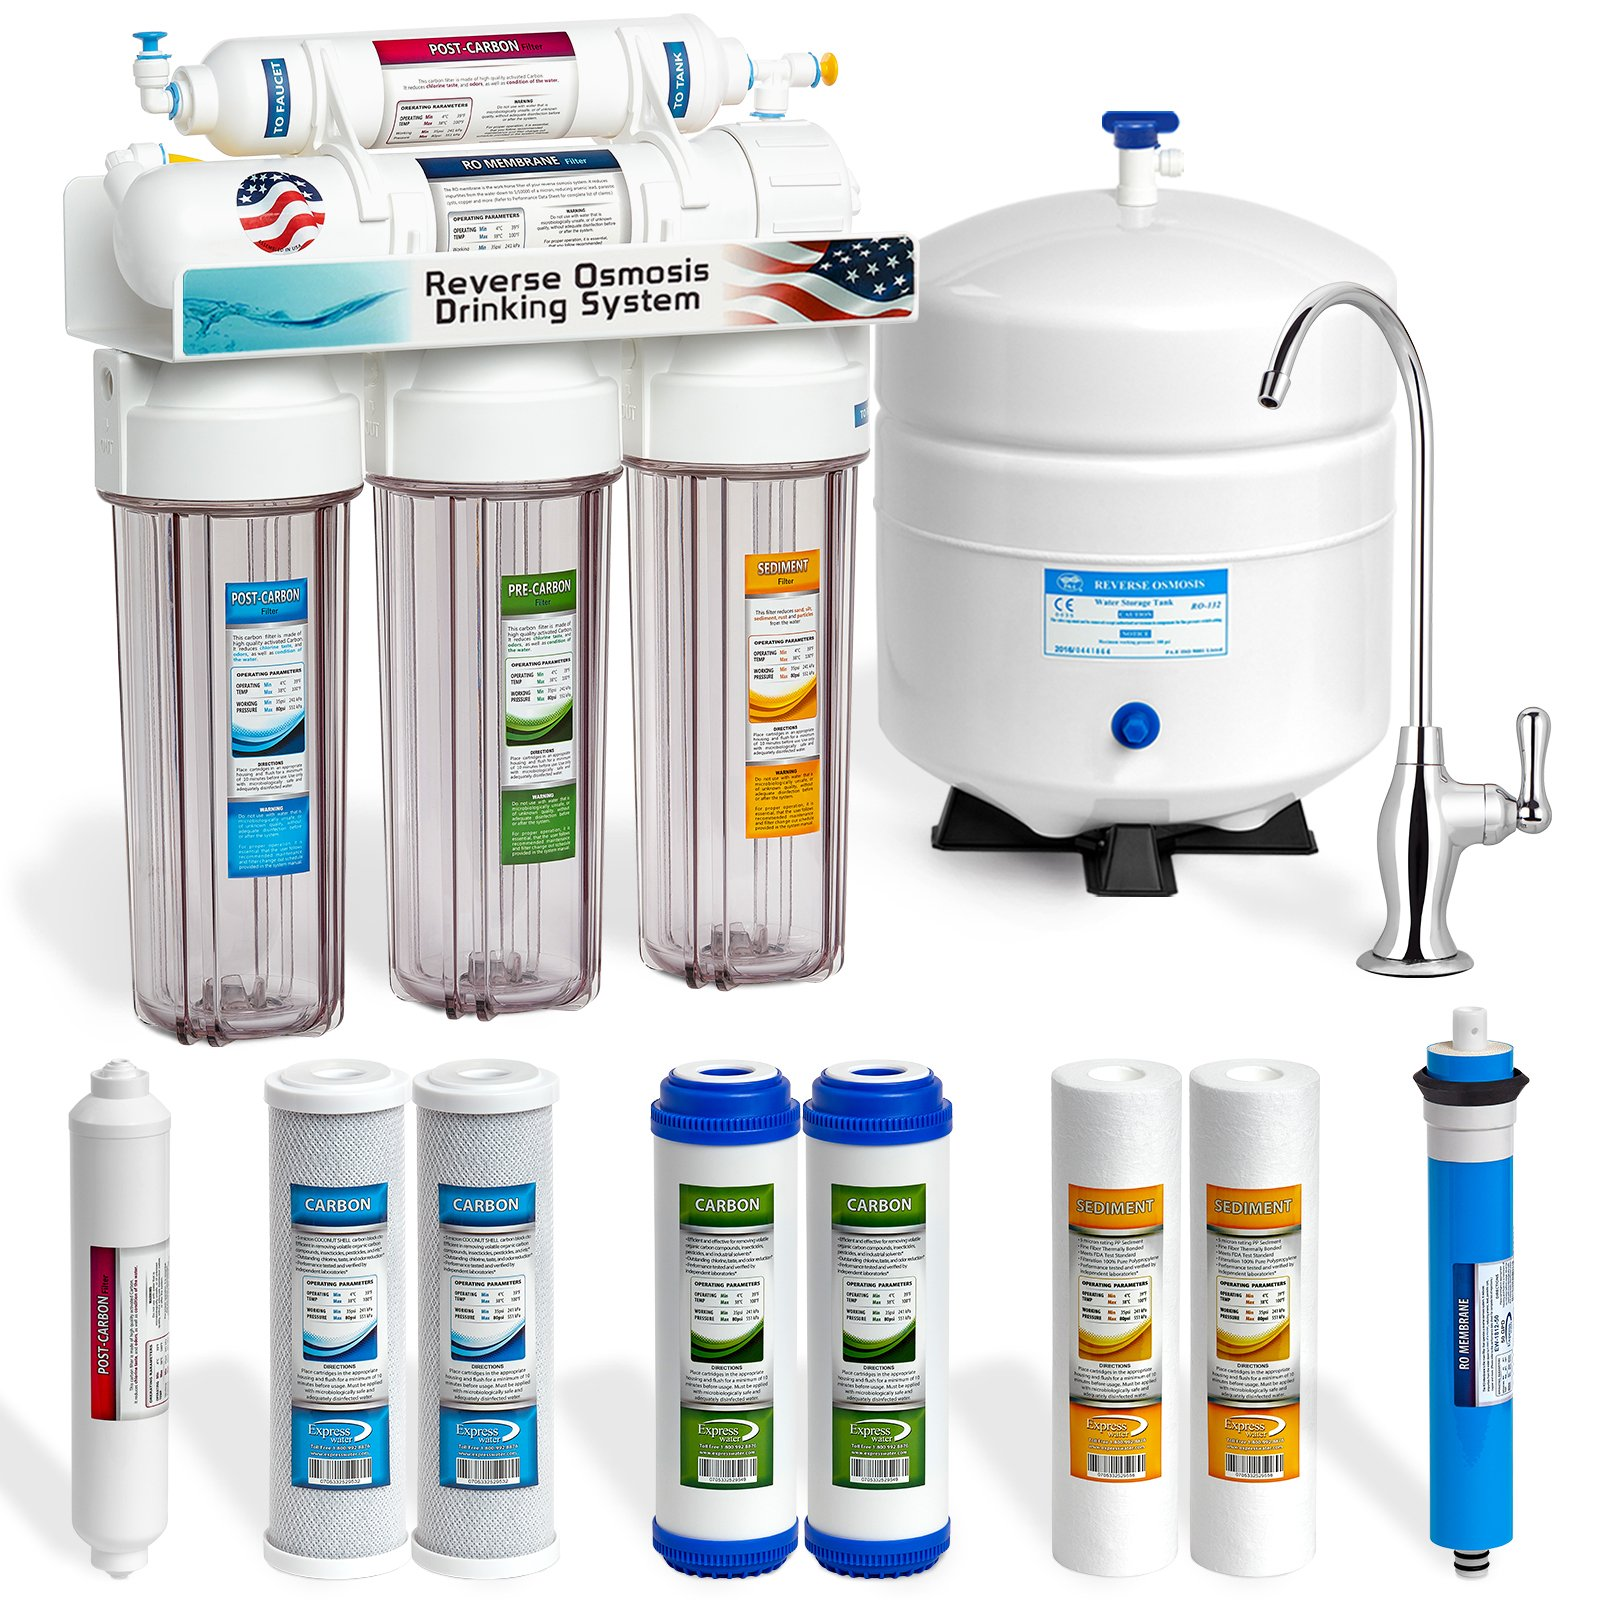 Express Water 5 Stage Under Sink Reverse Osmosis Filtration System 50 GPD RO Membrane Filter Deluxe Faucet Clear Housing Ultra Safe Residential Home Drinking Water Purification Extra Set of 4 Filters